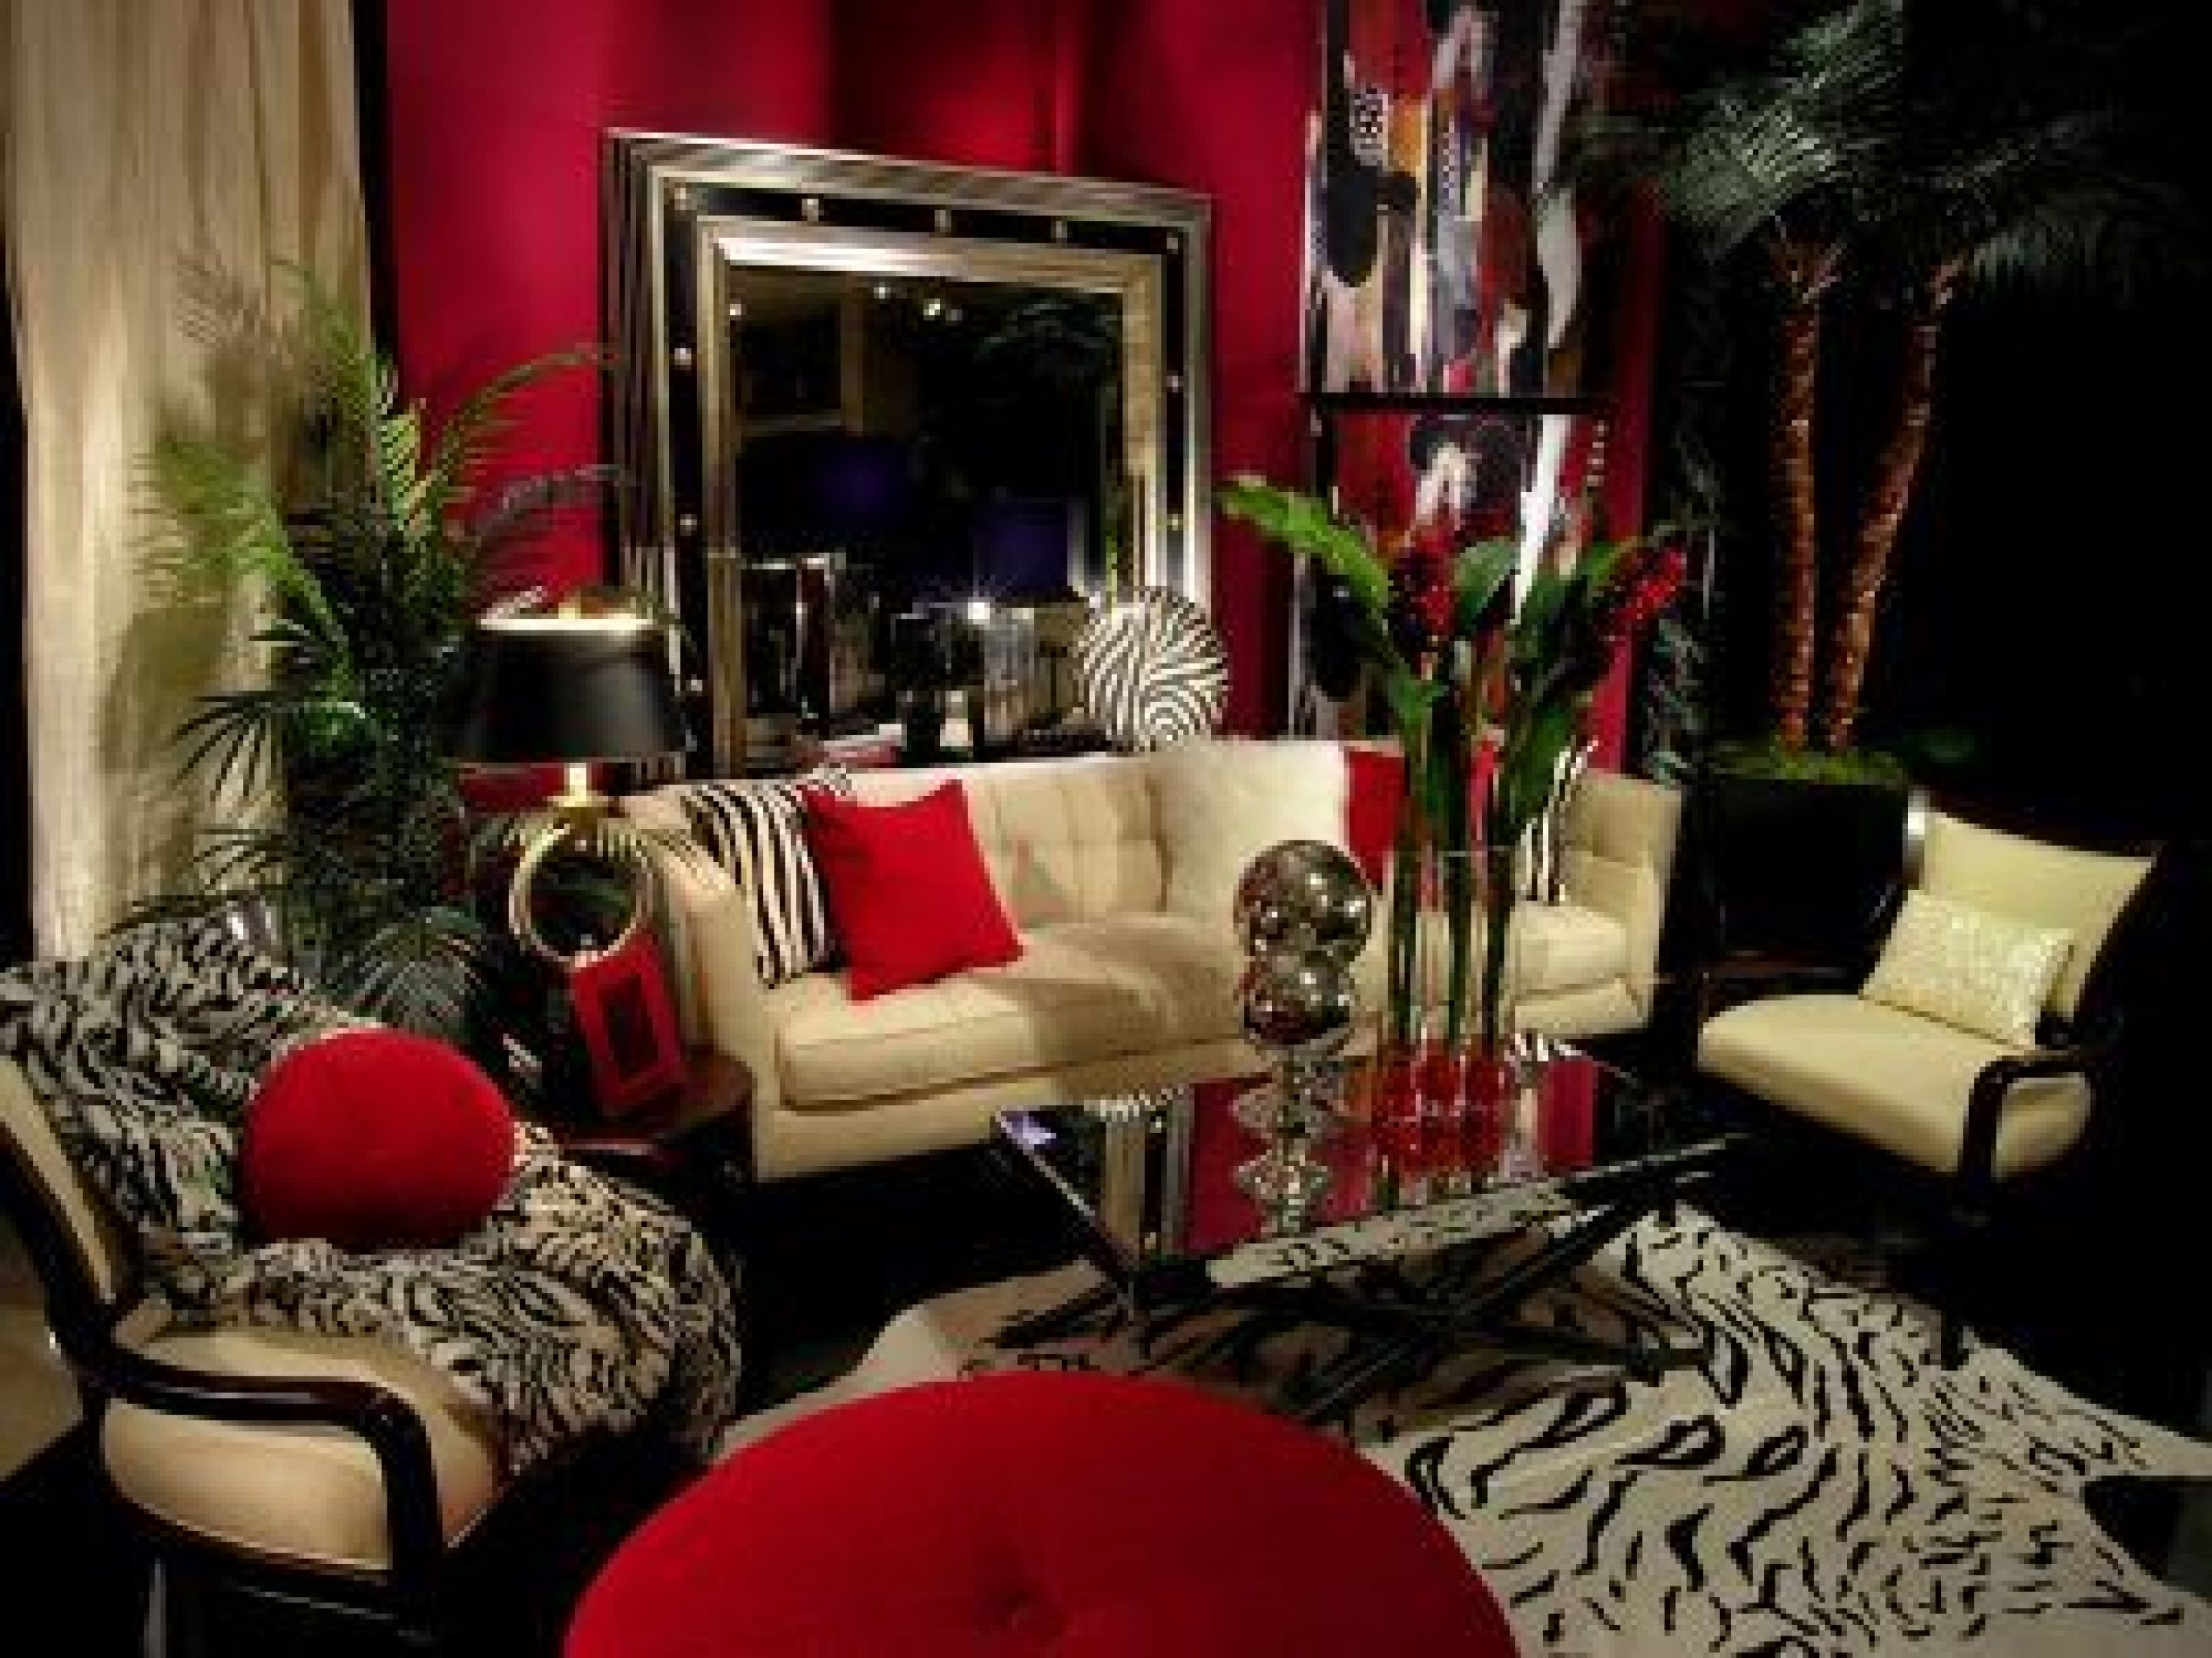 black red bedroom jungle - Google Search | Safari living ...